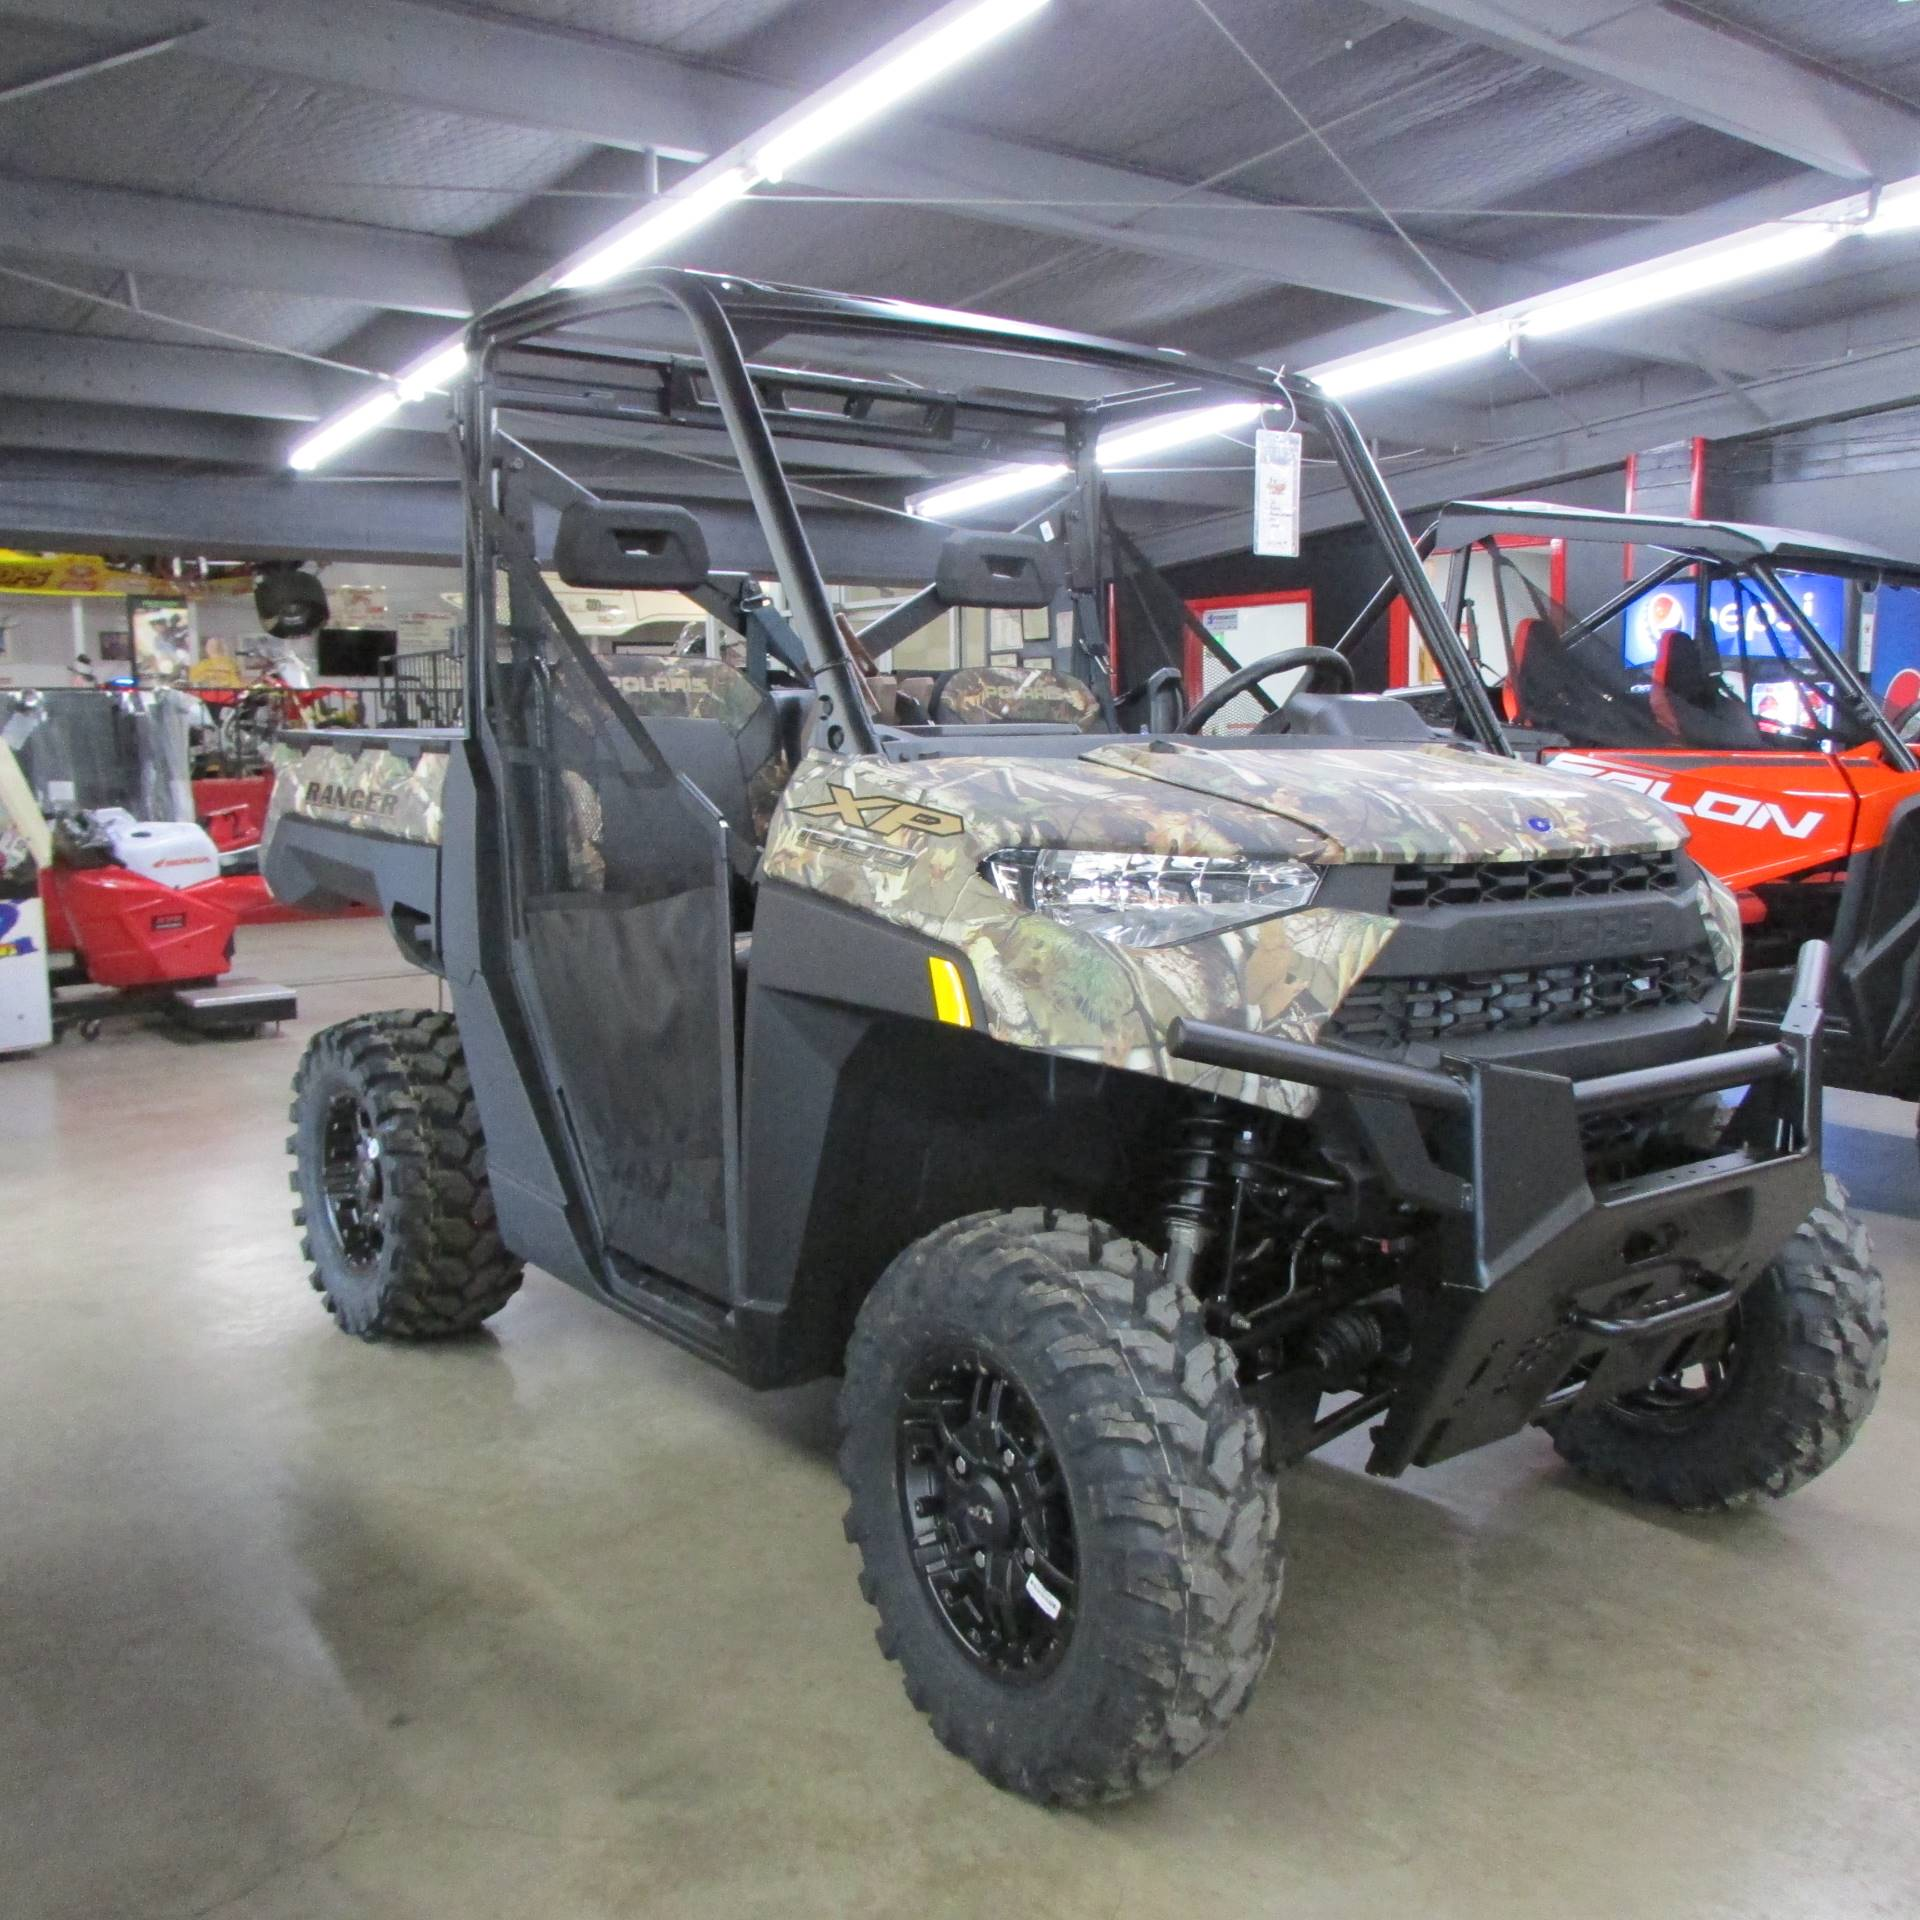 2021 Polaris Ranger XP 1000 Premium in Wichita Falls, Texas - Photo 4